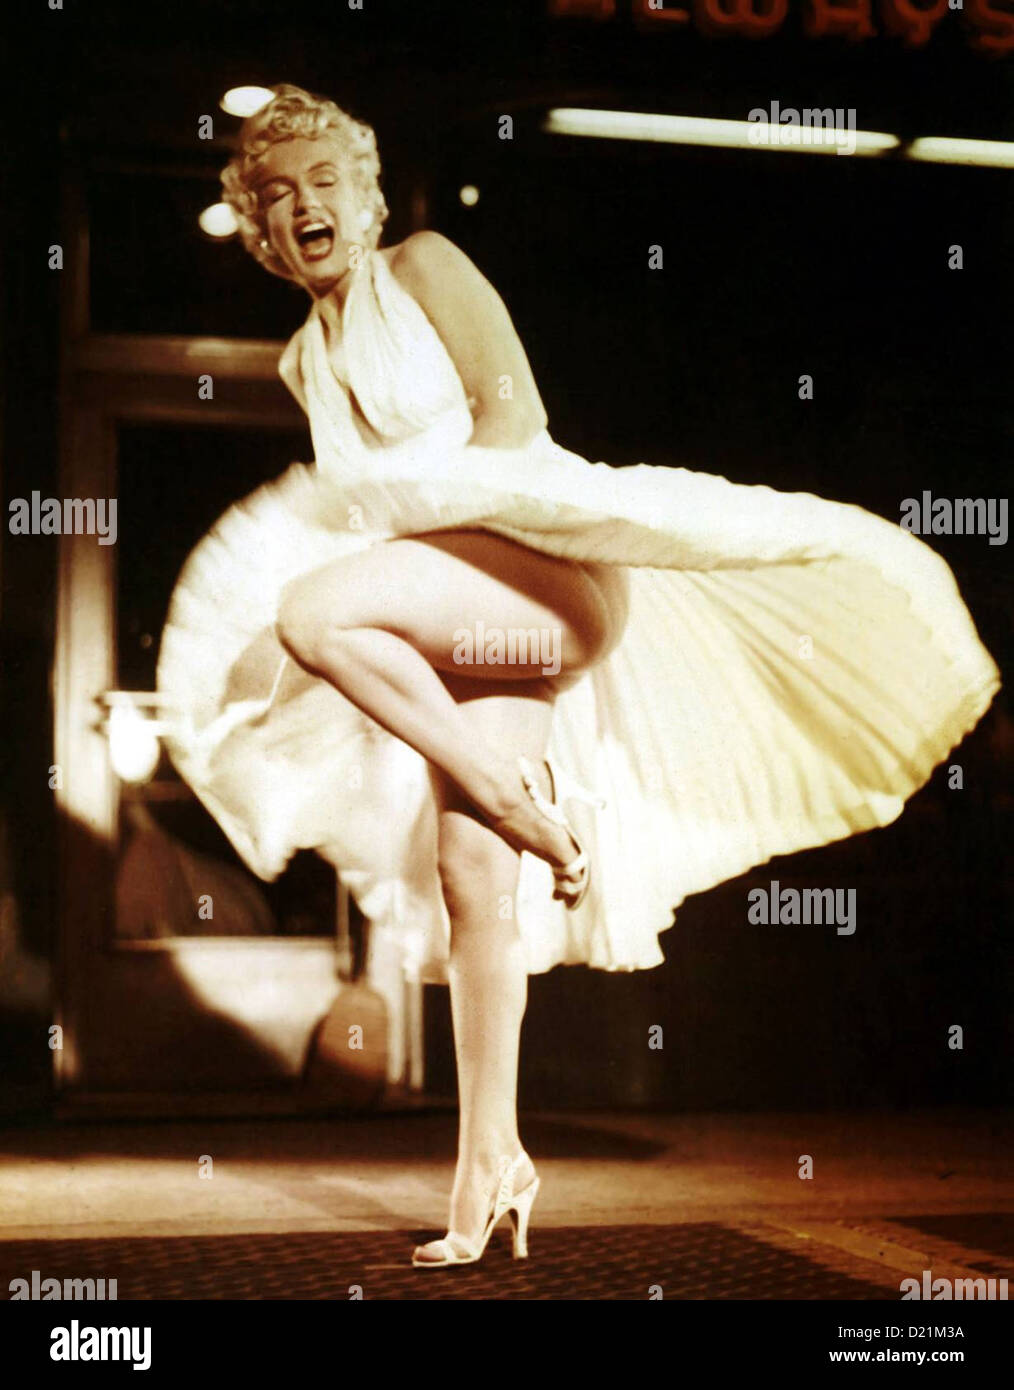 THE SEVEN YEAR ITCH  1955 20th Century Fox film with Marilyn Monroe - Stock Image